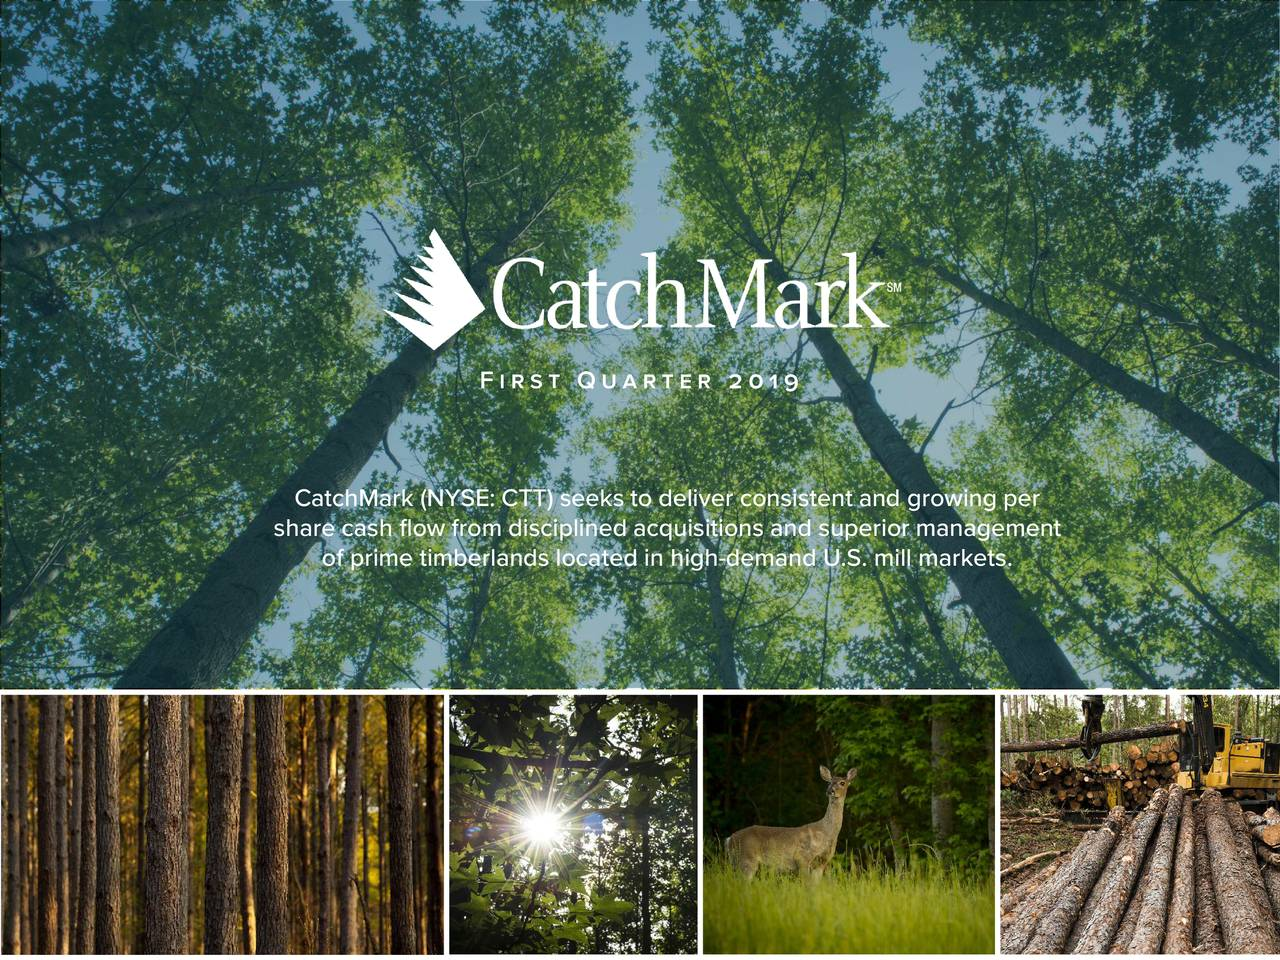 CatchMark (NYSE: CTT) seeks to deliver consistent and growing per share cash flow from disciplined acquisitions and superior management of prime timberlands located in high-demand U.S. mill markets. 1 1